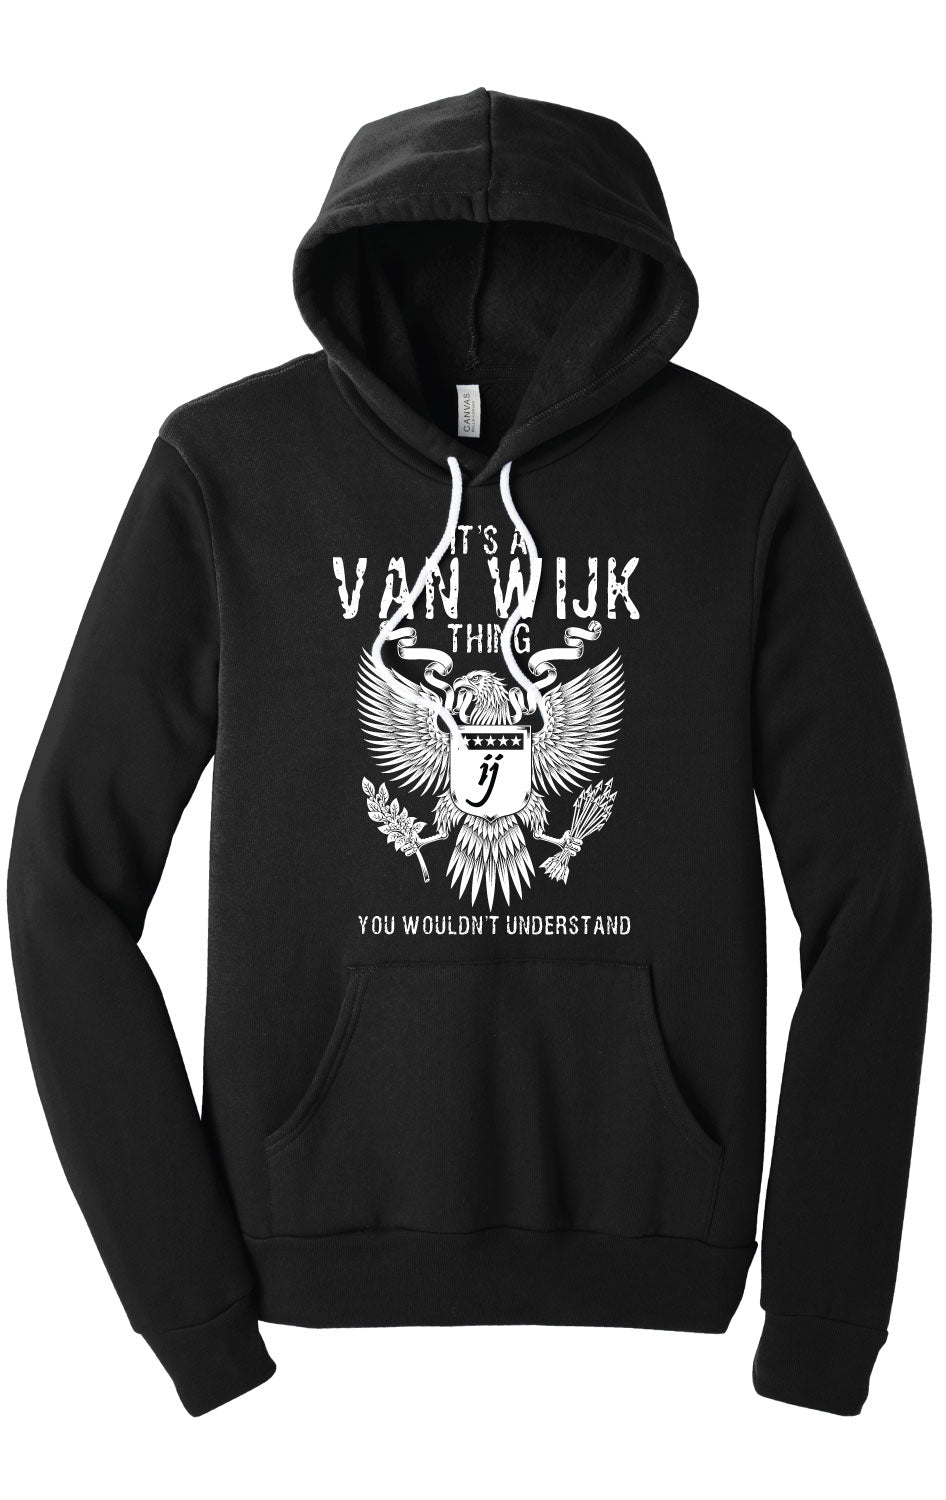 Gift Shop:  Sweatshirt - It's a Van Wijk Thing...